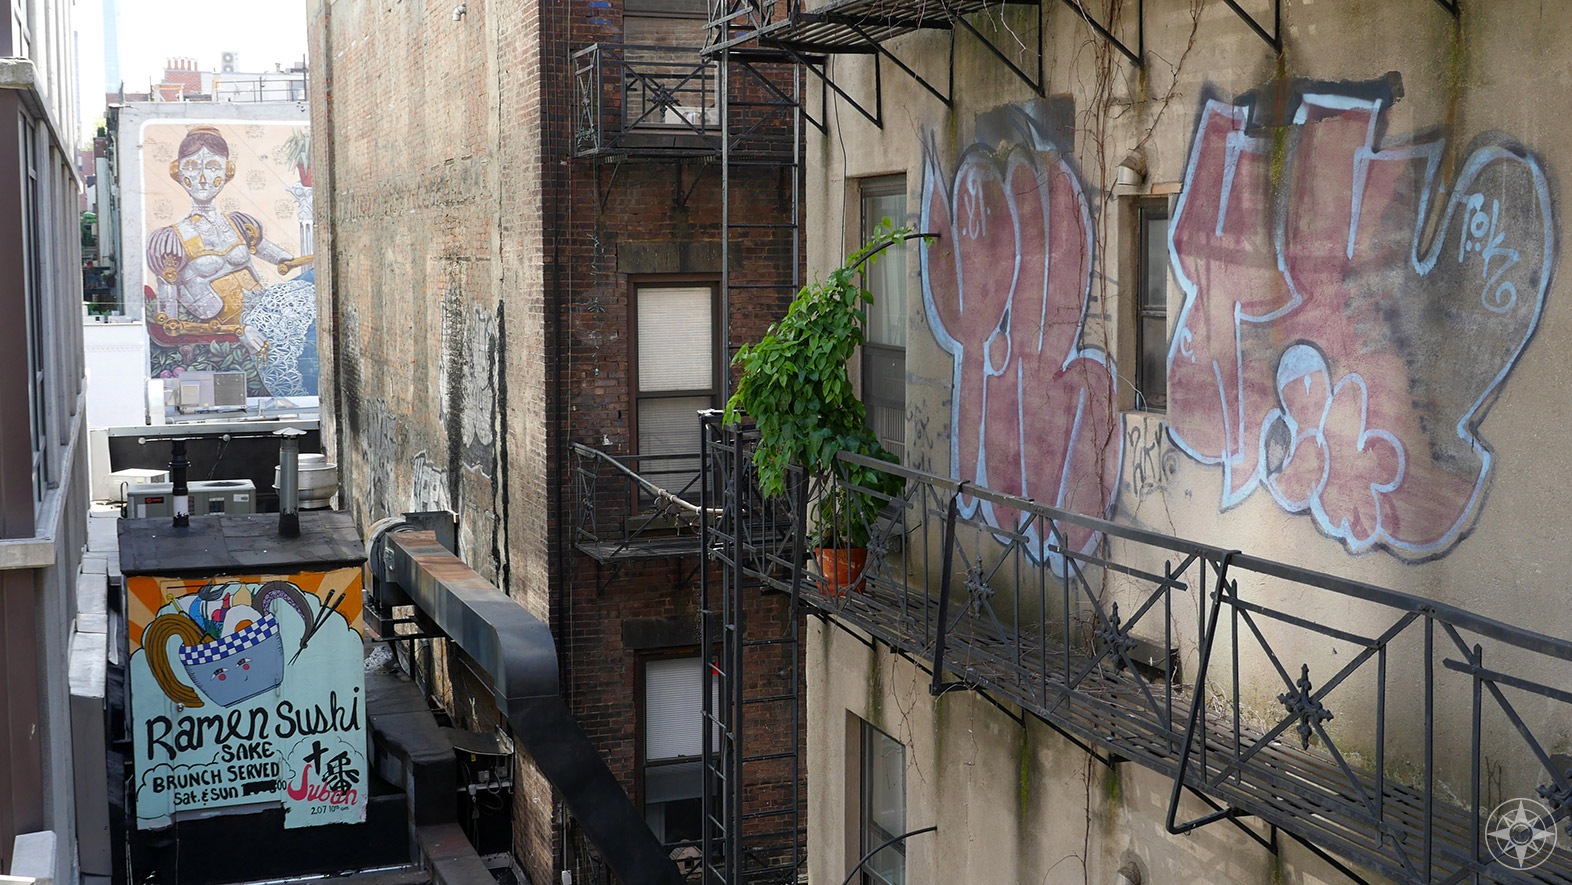 Seen from the High Line: Ramen, female robot, street art, fire escape, plant.